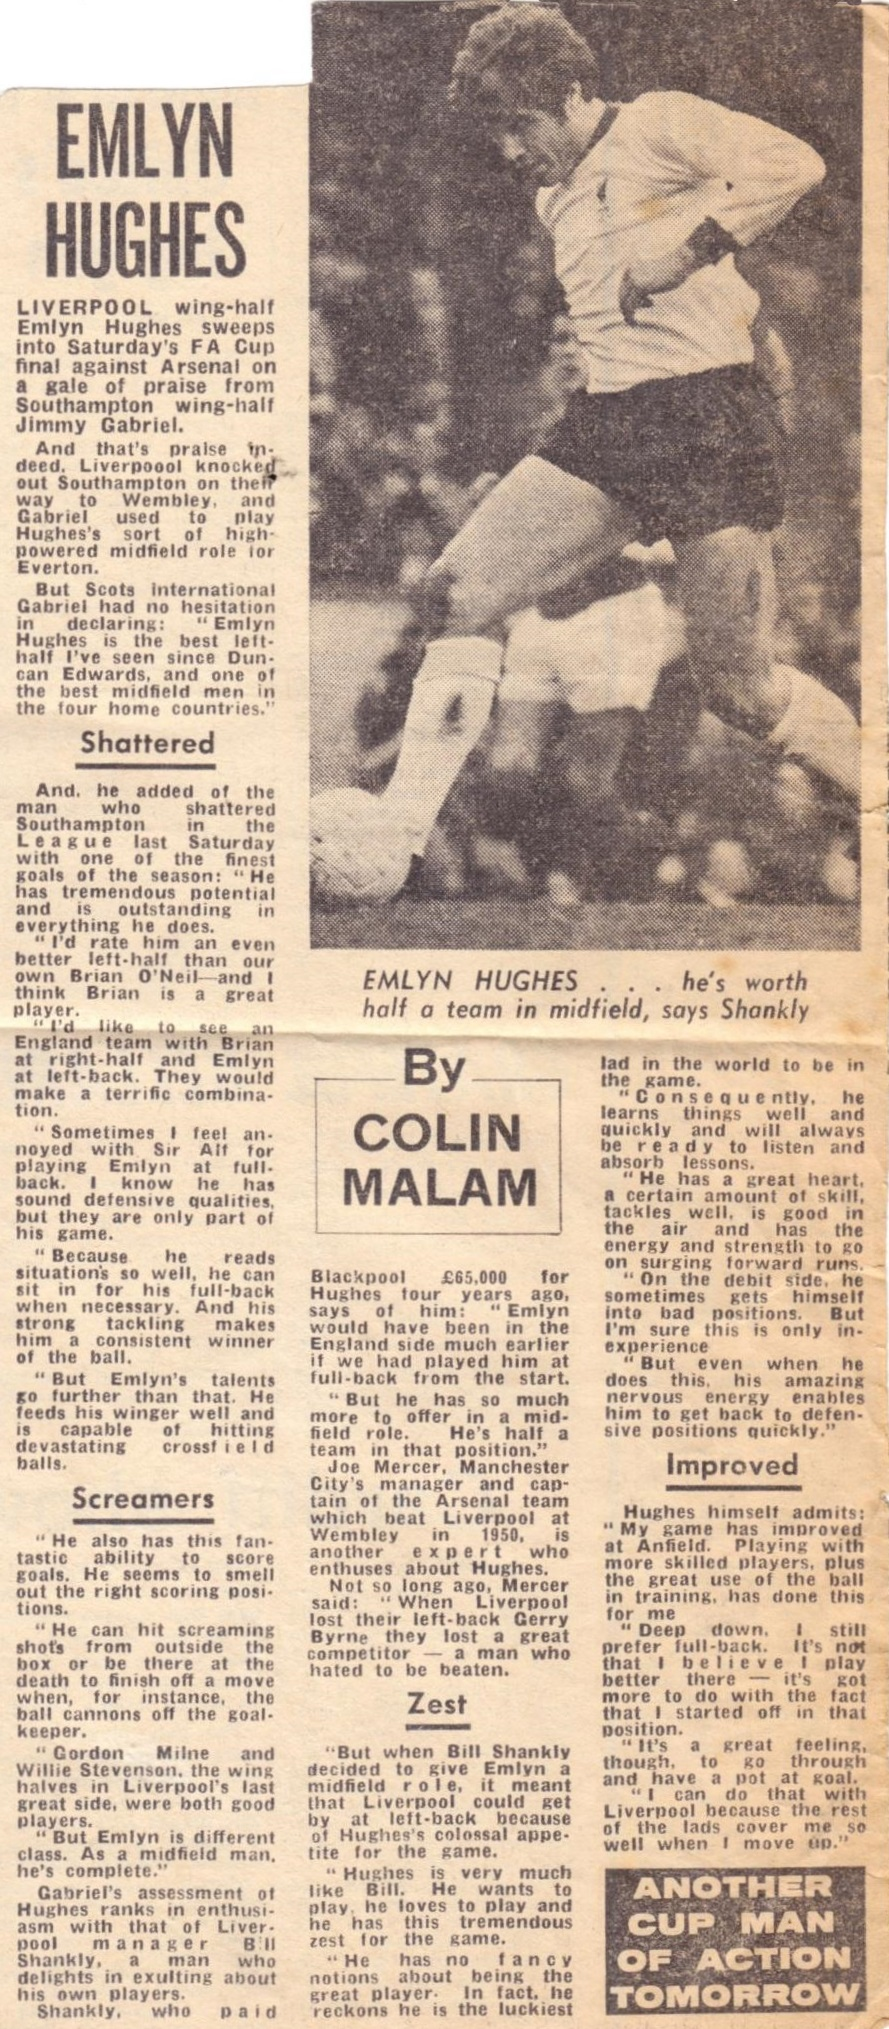 Spotlight on Emlyn Hughes before the 1971 FA Cup final